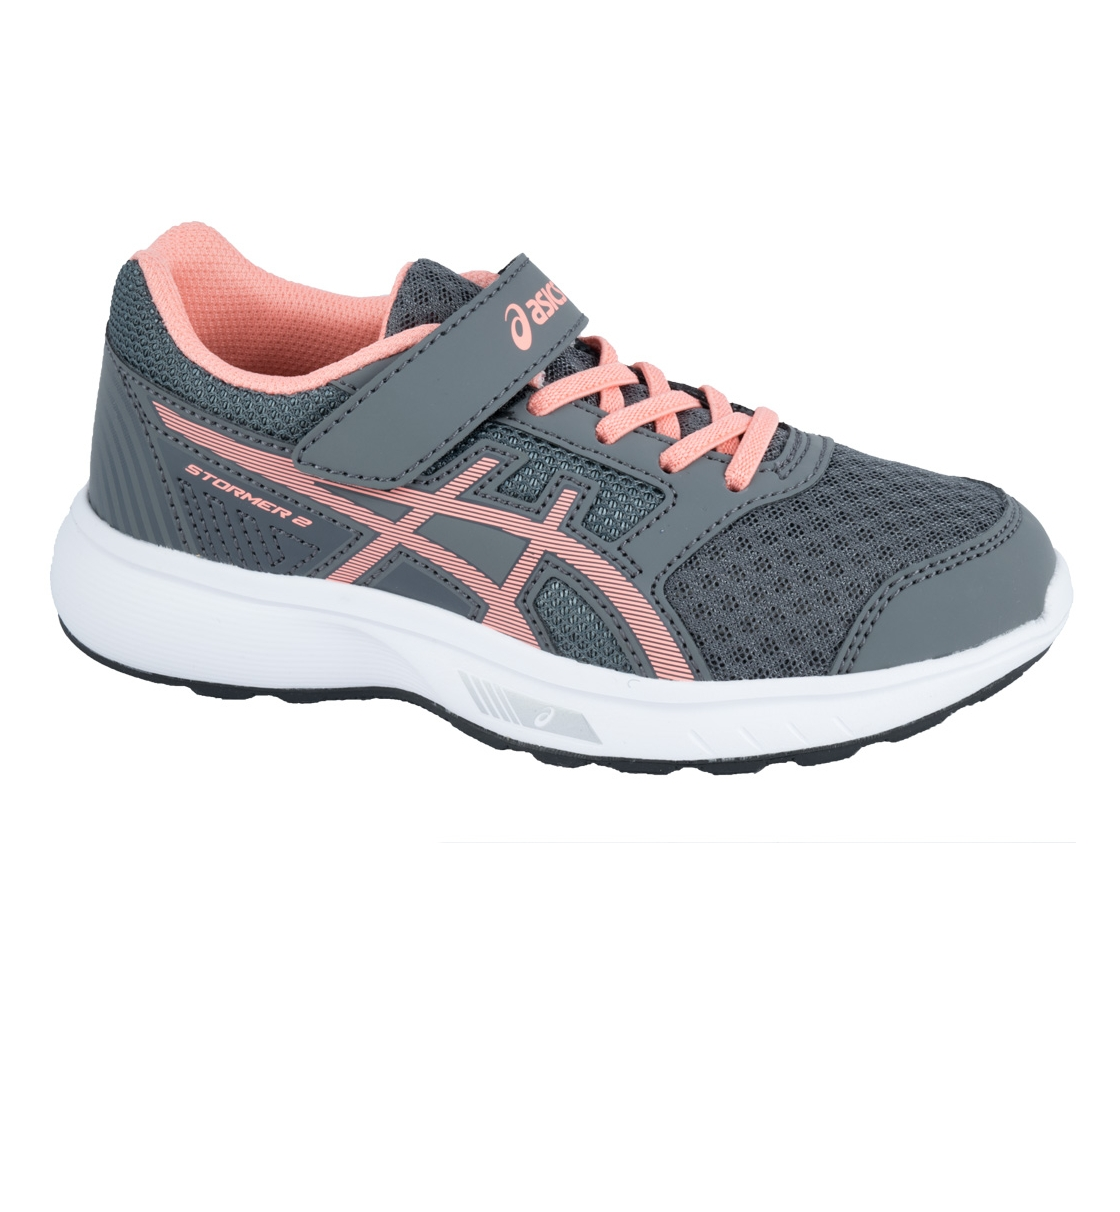 Asics Παιδικό Παπούτσι Stormer 2 Ps C812N